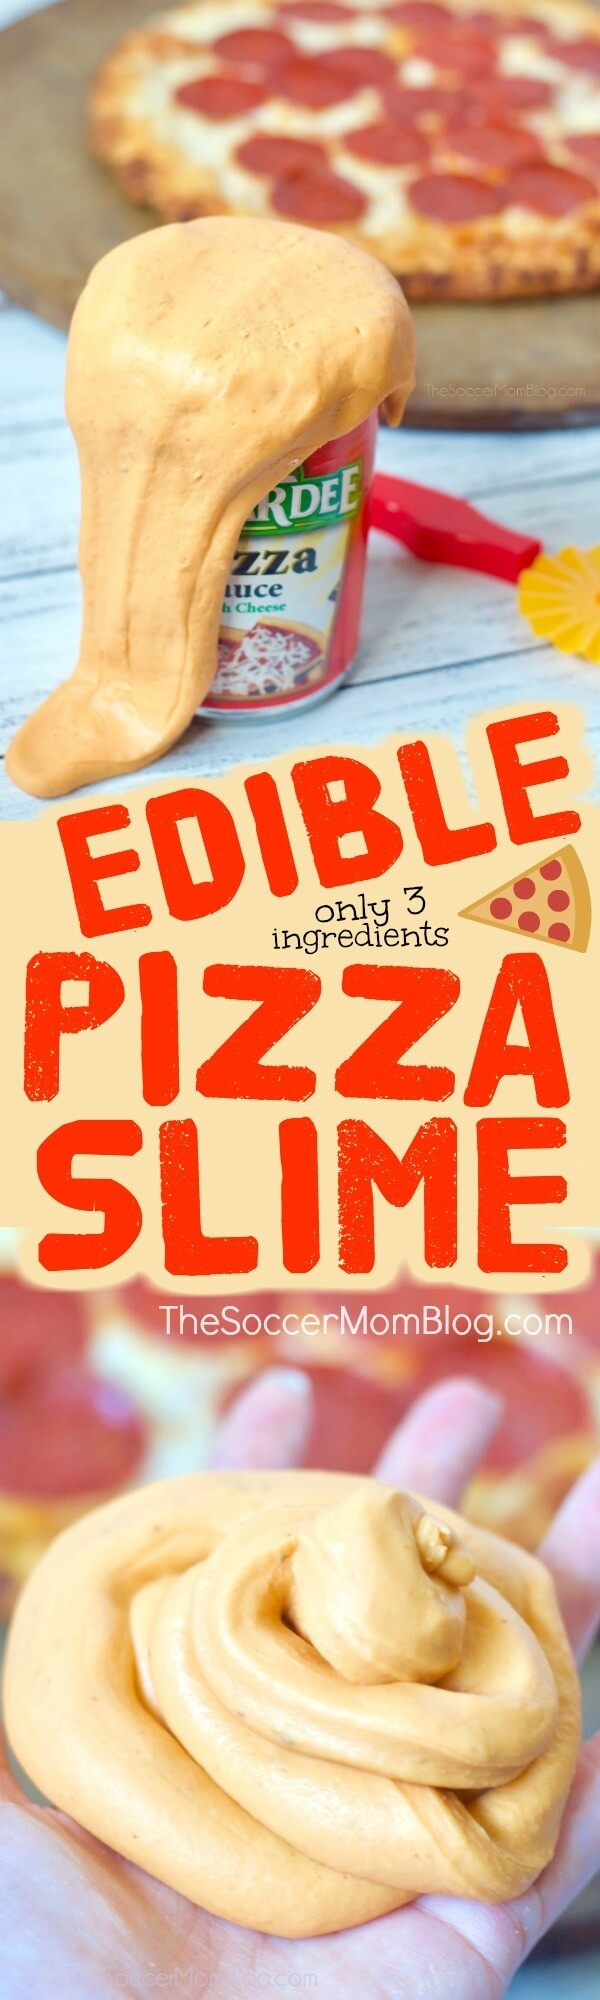 Our edible pizza slime is super stretchy and it smells like a fresh-baked pie full of sauce-y cheesy goodness. If you are a pizza fan (and most kids are, right?), then you've got to try this one!